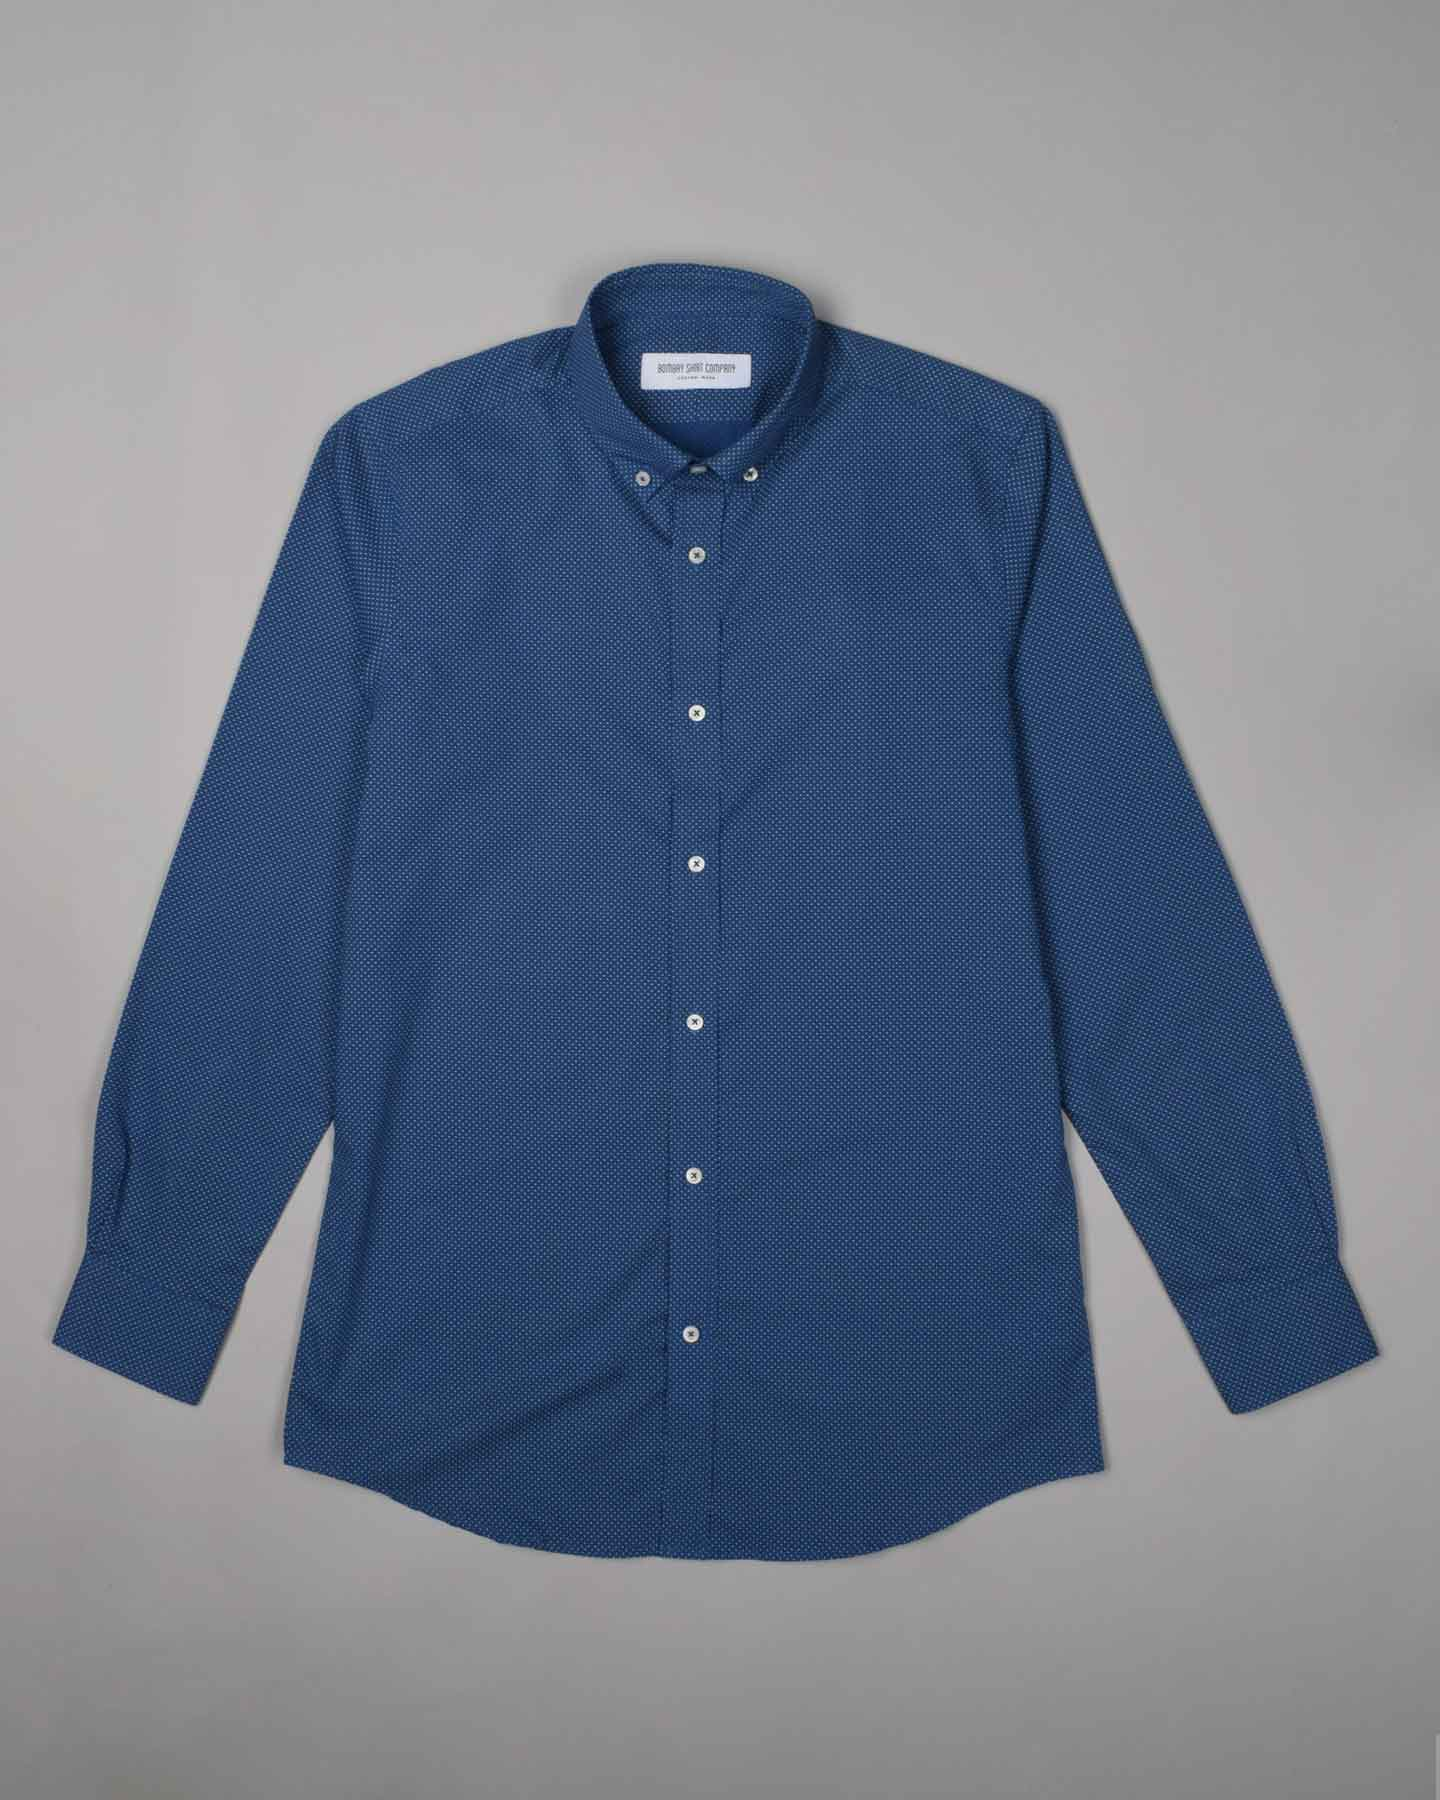 Carlo Bassetti Blue Polka Dream Shirt